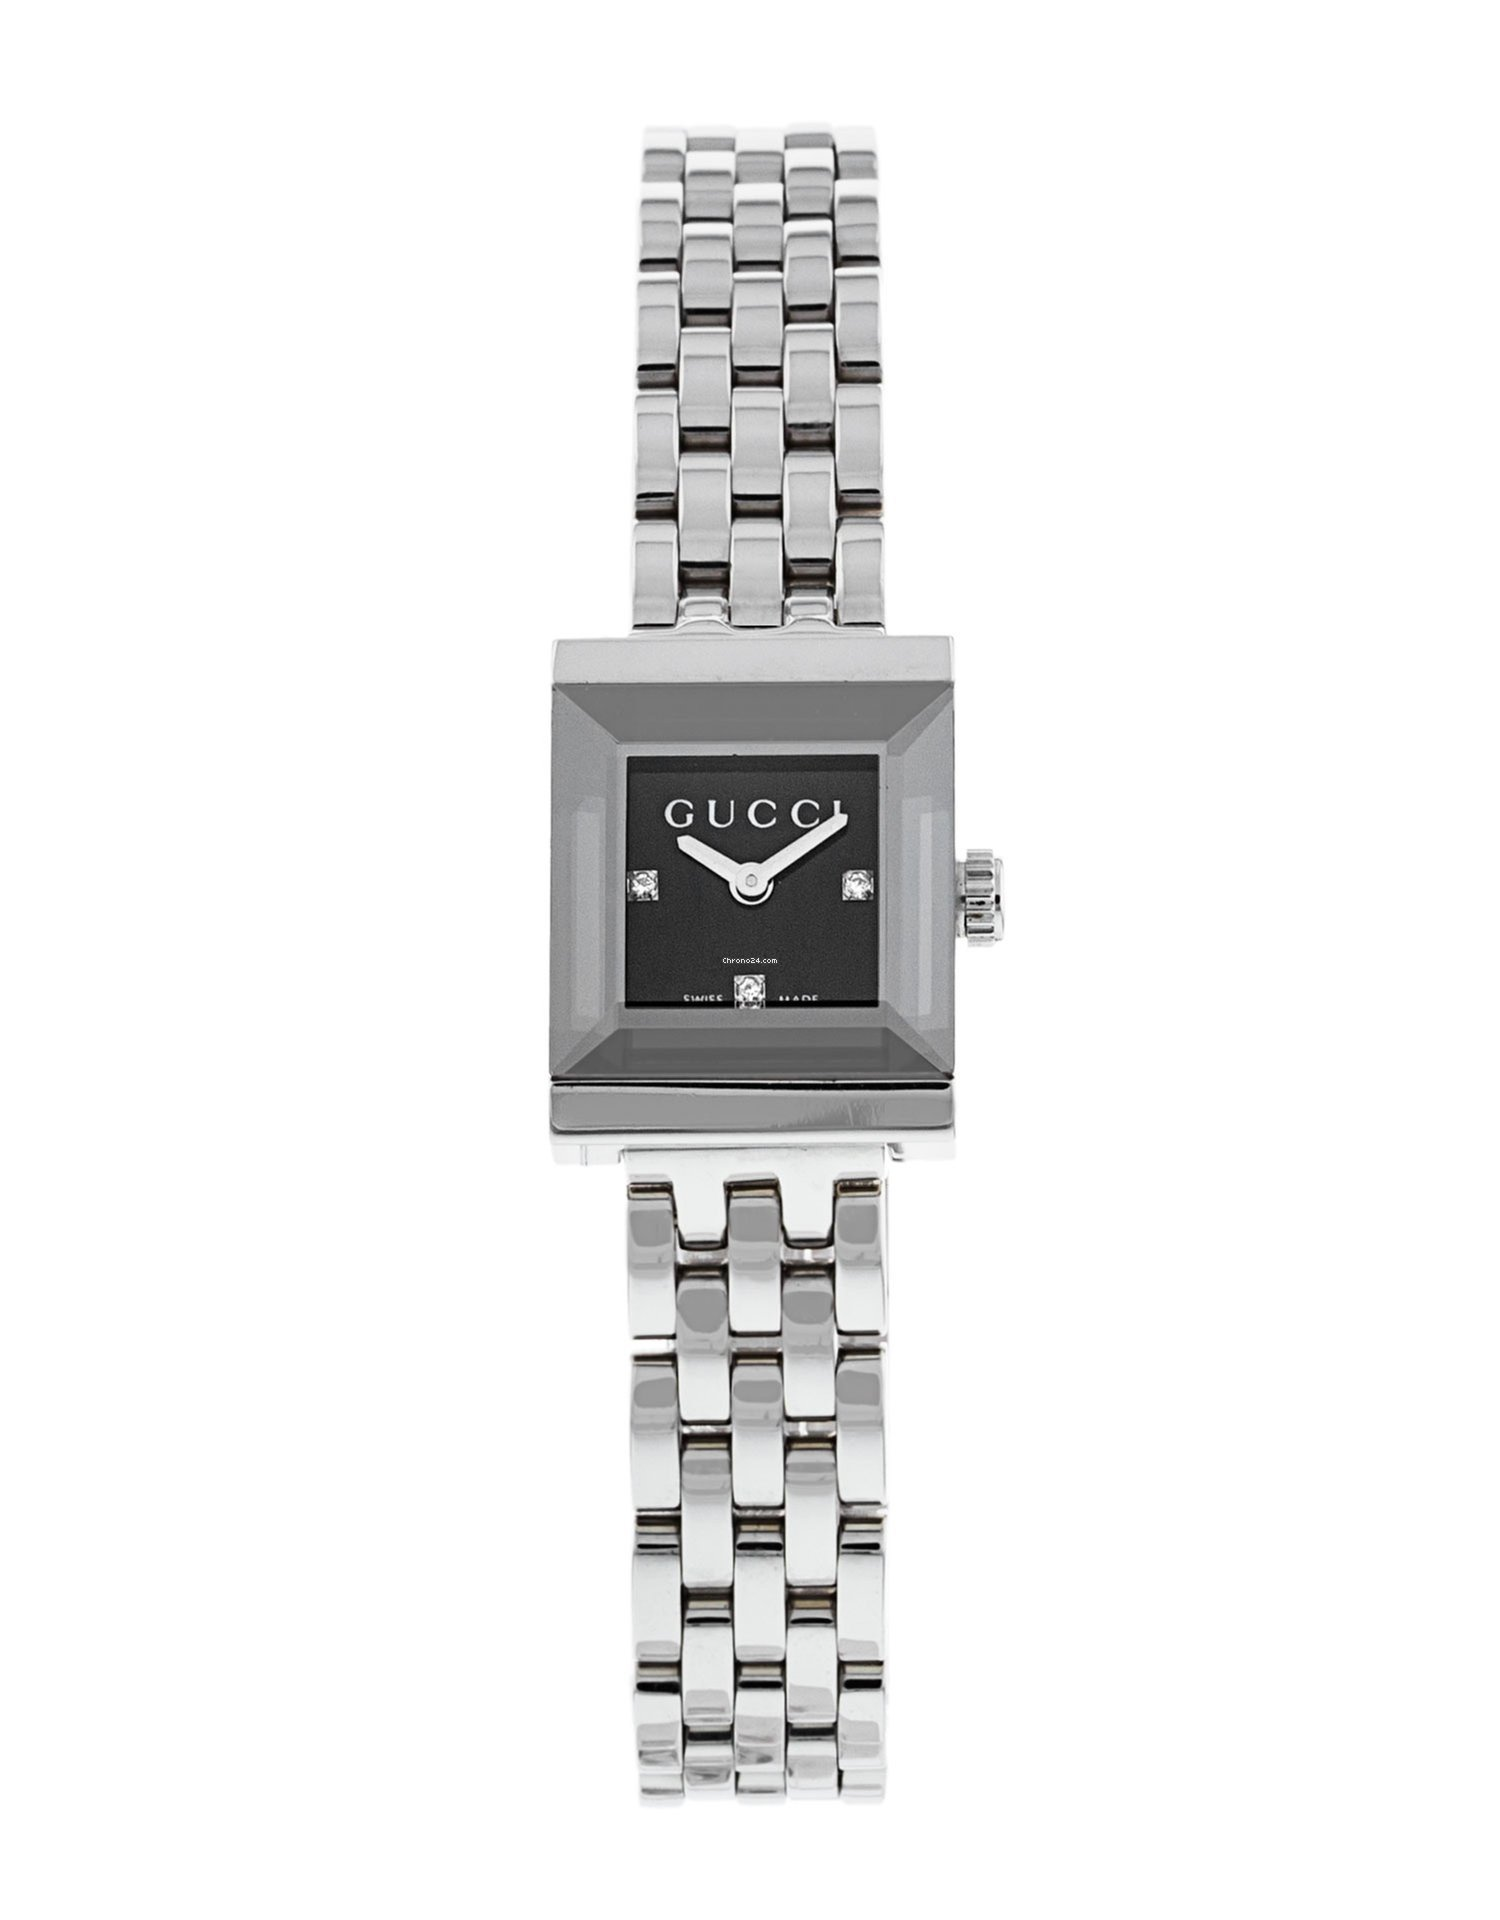 536cfa41619 Gucci Watch G-Frame YA128507 for S  807 for sale from a Seller on Chrono24